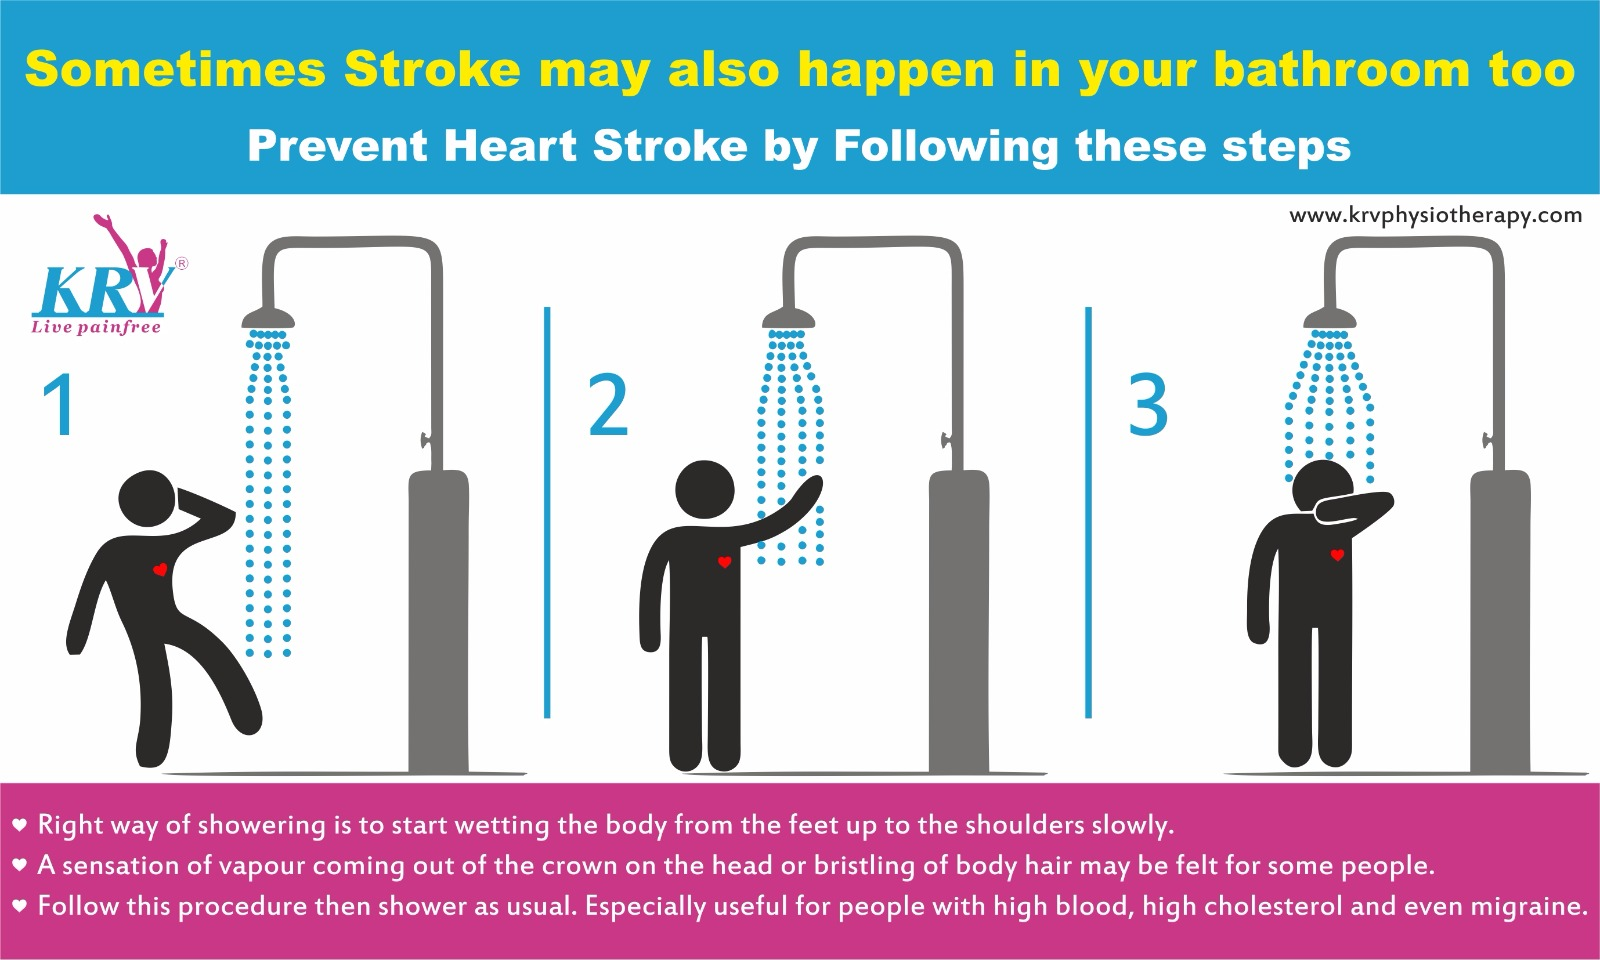 Why do Strokes often happen in the Bathroom?